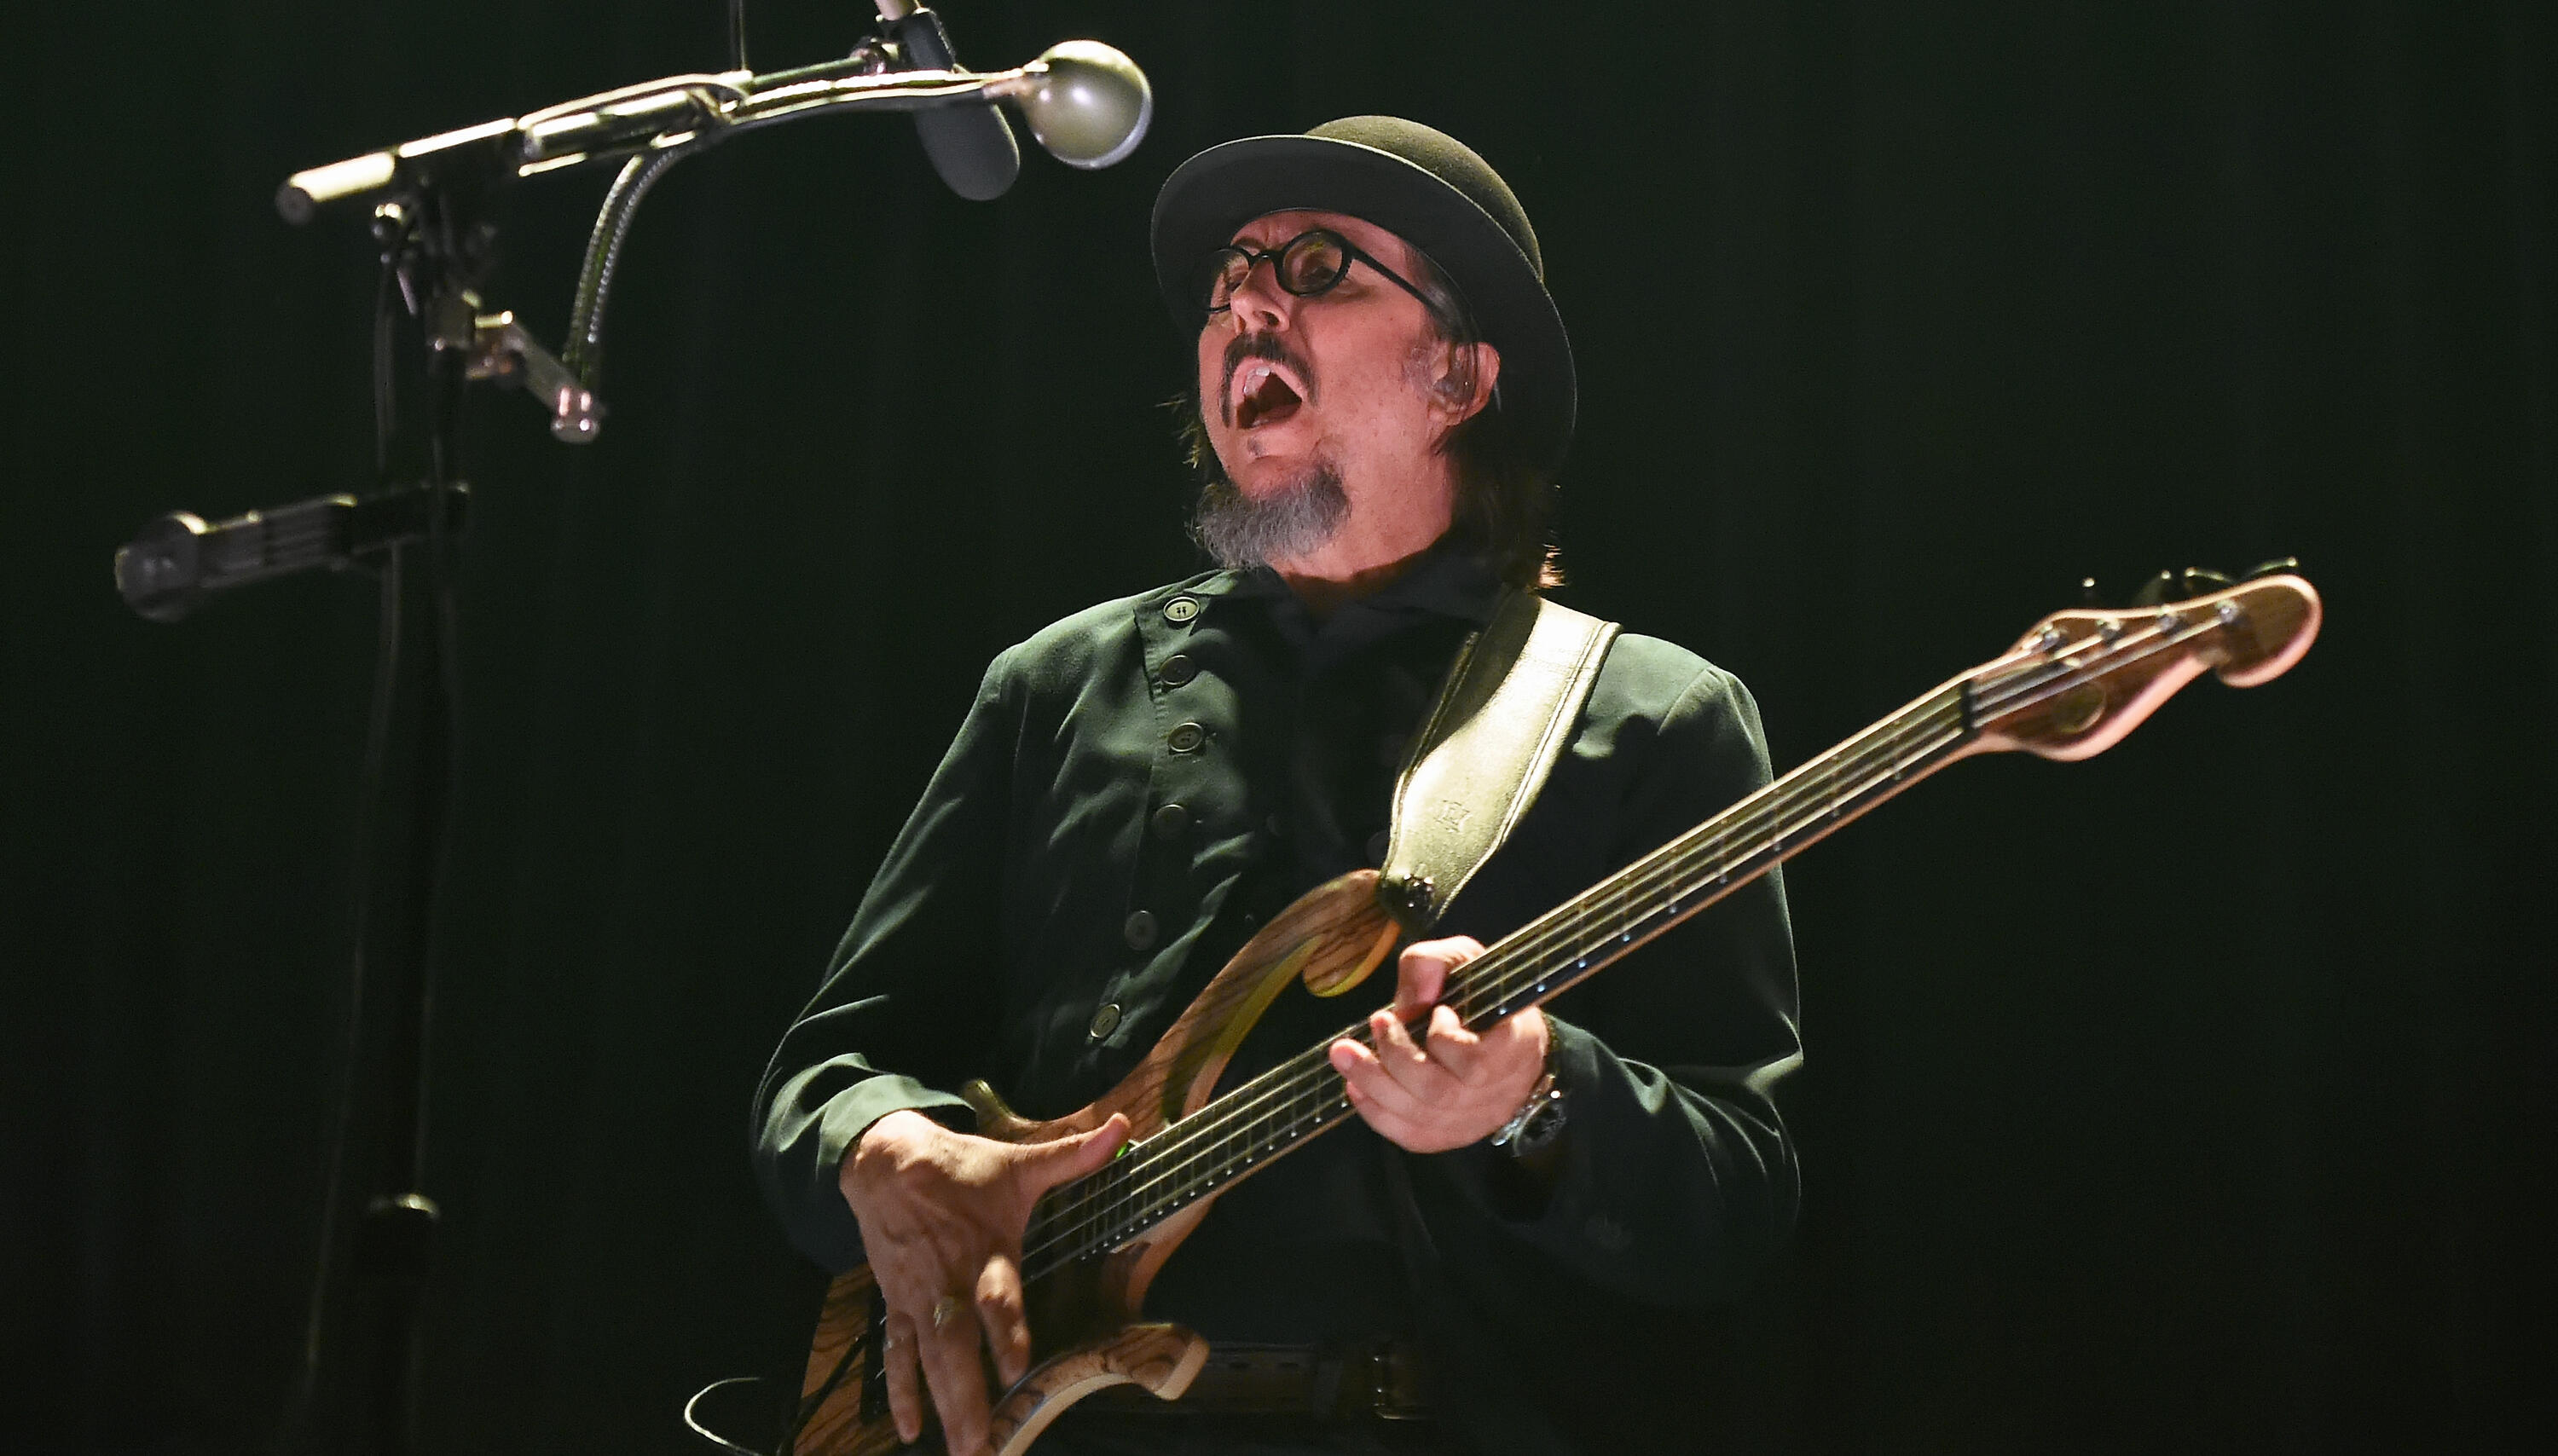 Primus Confirms 'A Tribute To Kings' Summer Tour Honoring Rush